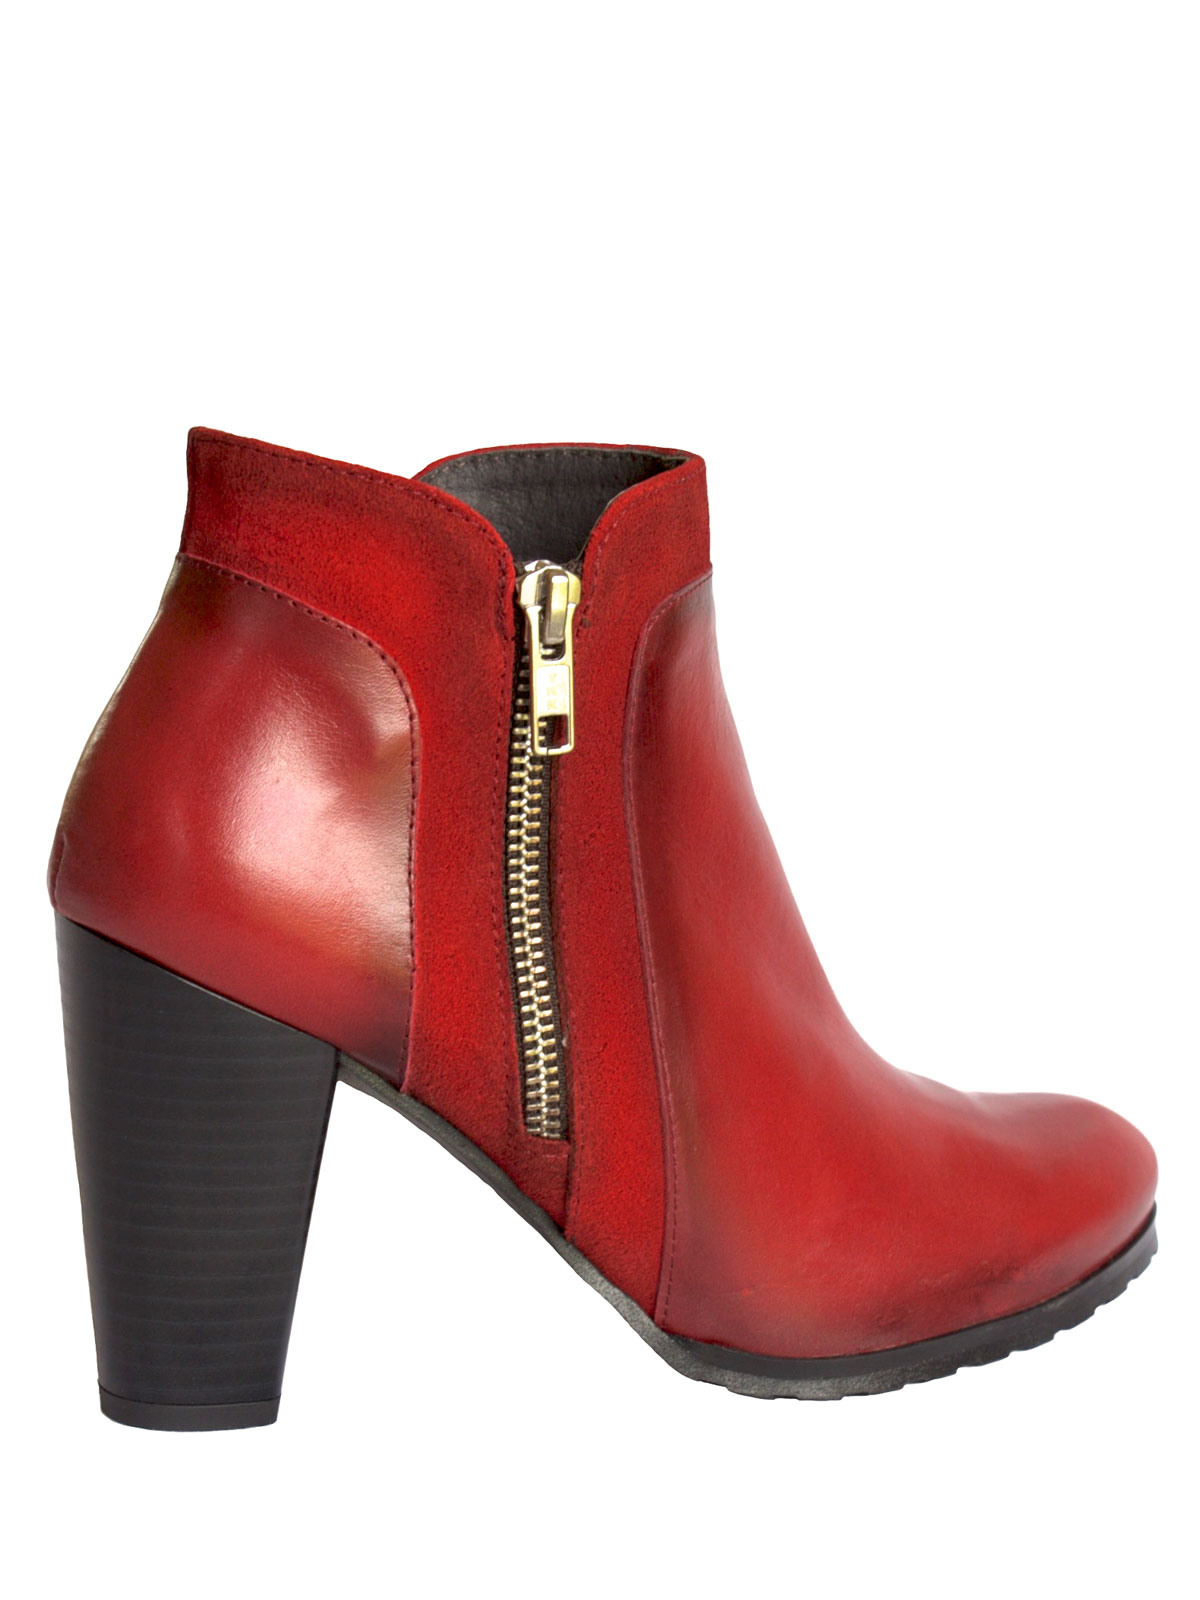 Vitti Love Red Leather Chunky High Heel Ankle Boots - Tout Ensemble